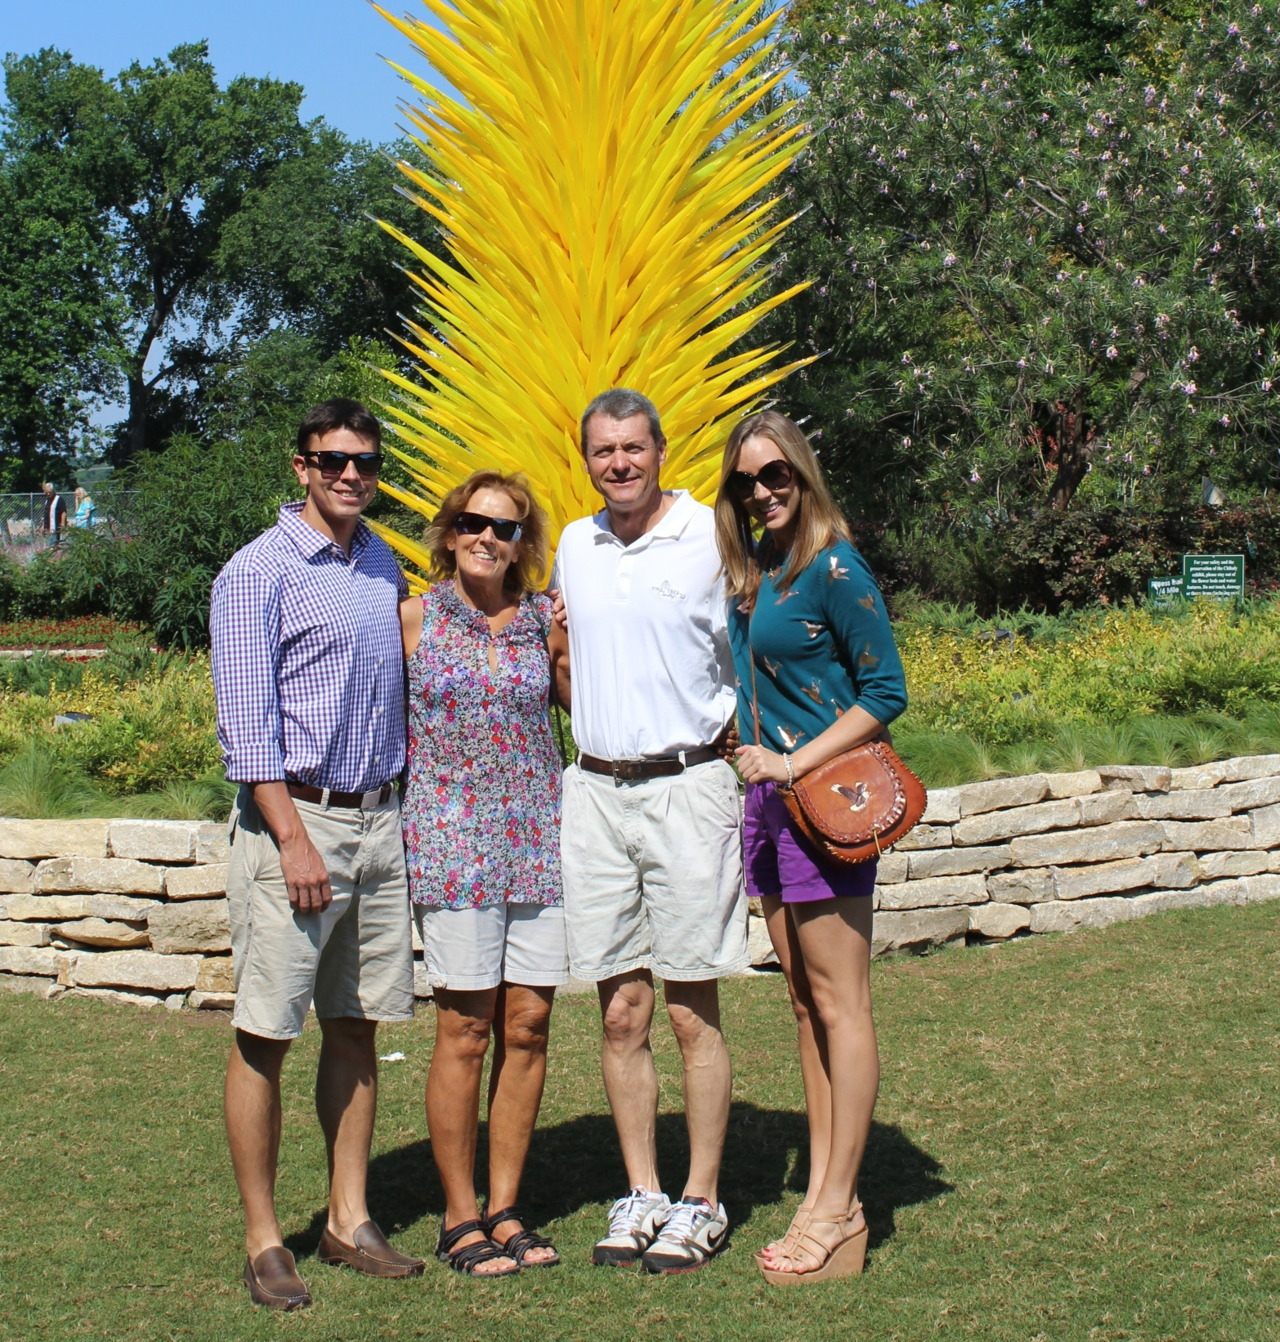 blessed to have this family.  Mother's Day 2012 - Dallas Arboretum